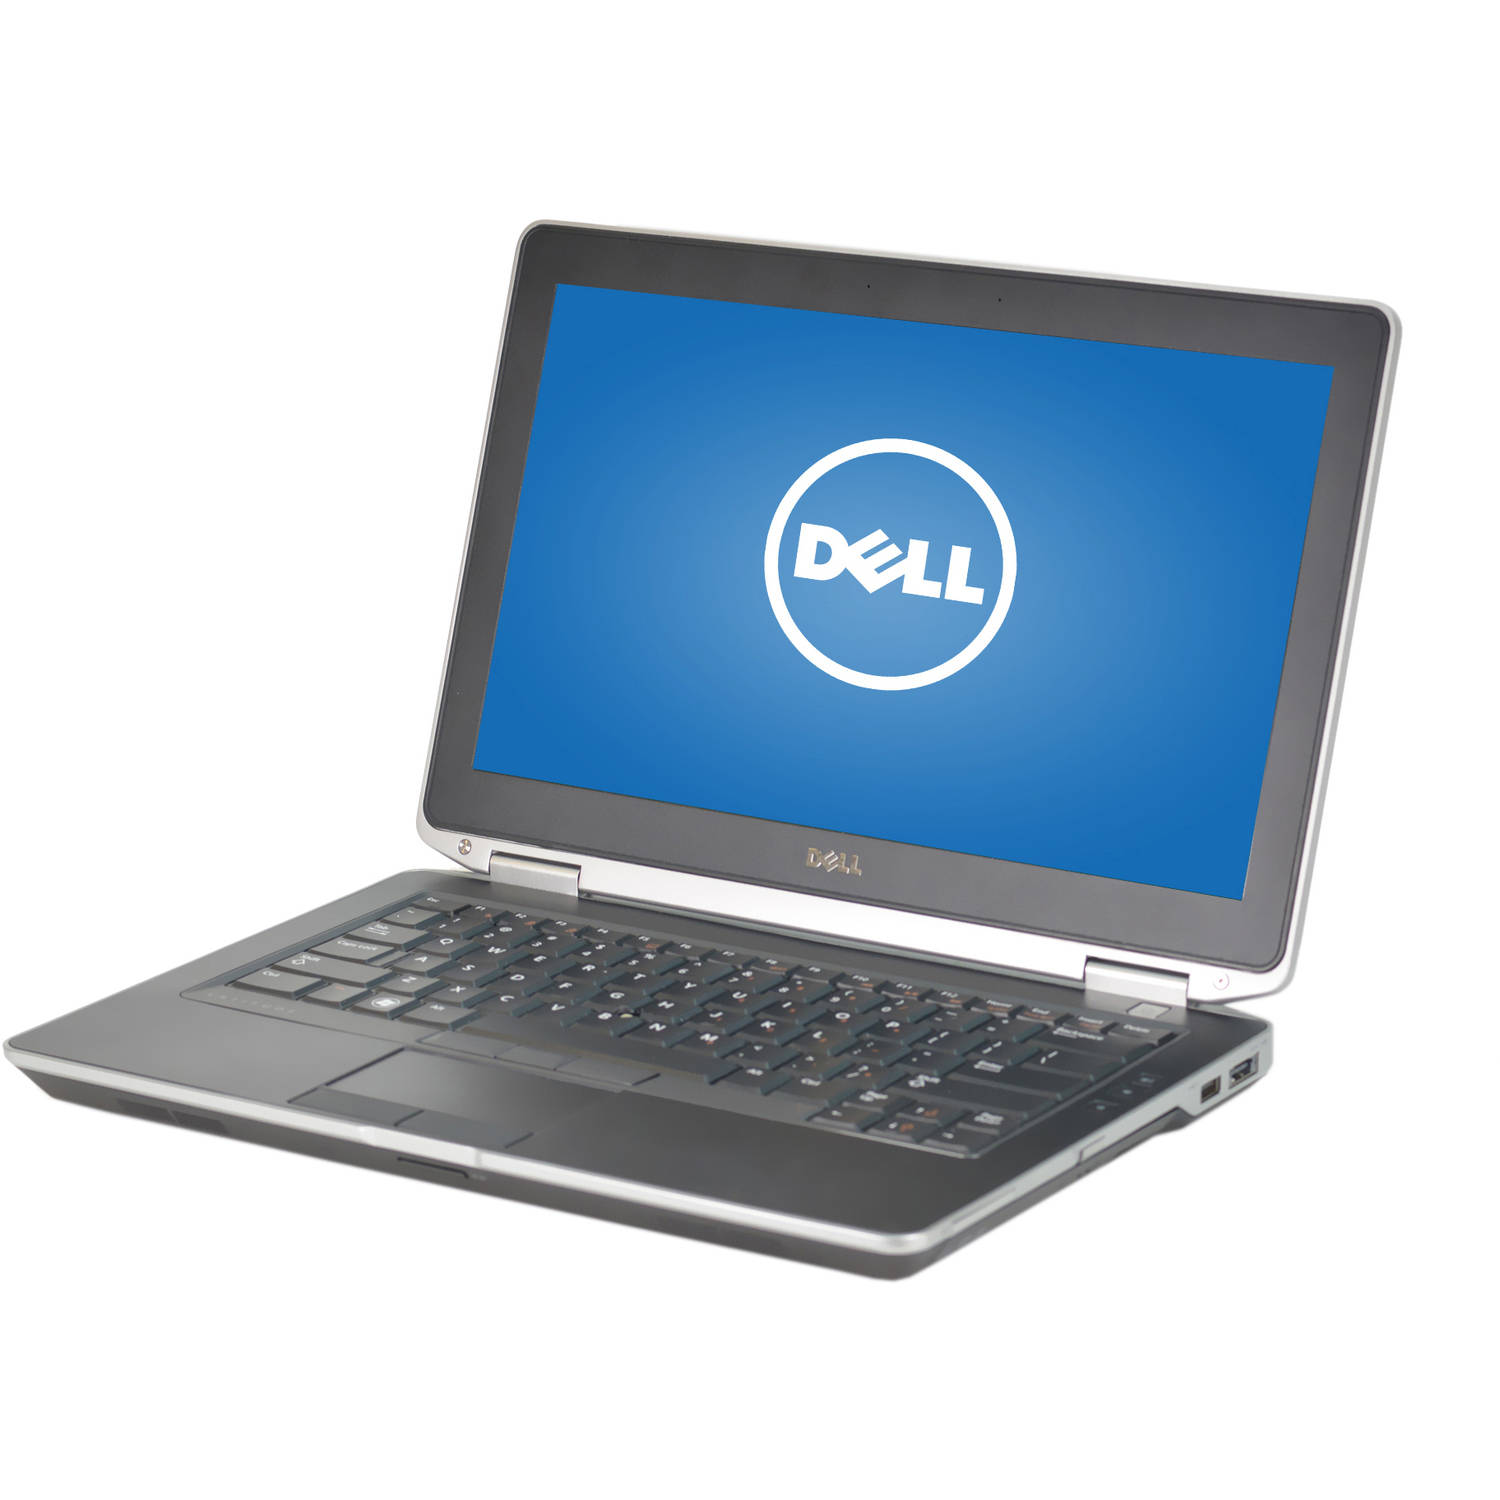 "Refurbished Dell Silver 13.3"" Latitude E6330 WA5-1107 Laptop PC with Intel Core i5-3320M Processor, 16GB Memory, 256GB Solid State Drive and Windows 10 Pro"